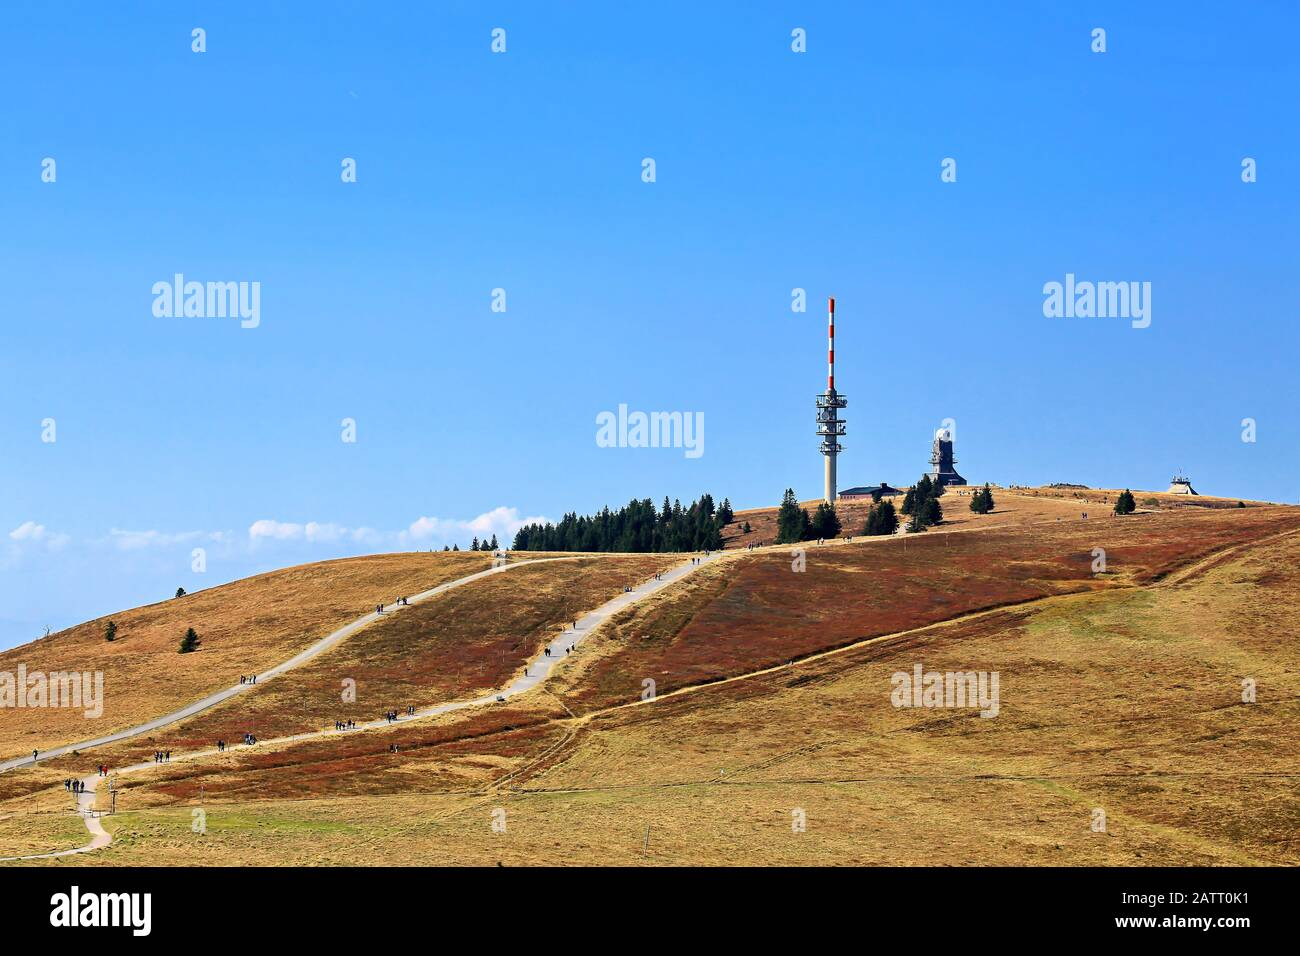 Feldberg Black Forest / Germany - 09 22 2018: Feldberg is a mountain peak in the Black Forest with TV tower. Stock Photo